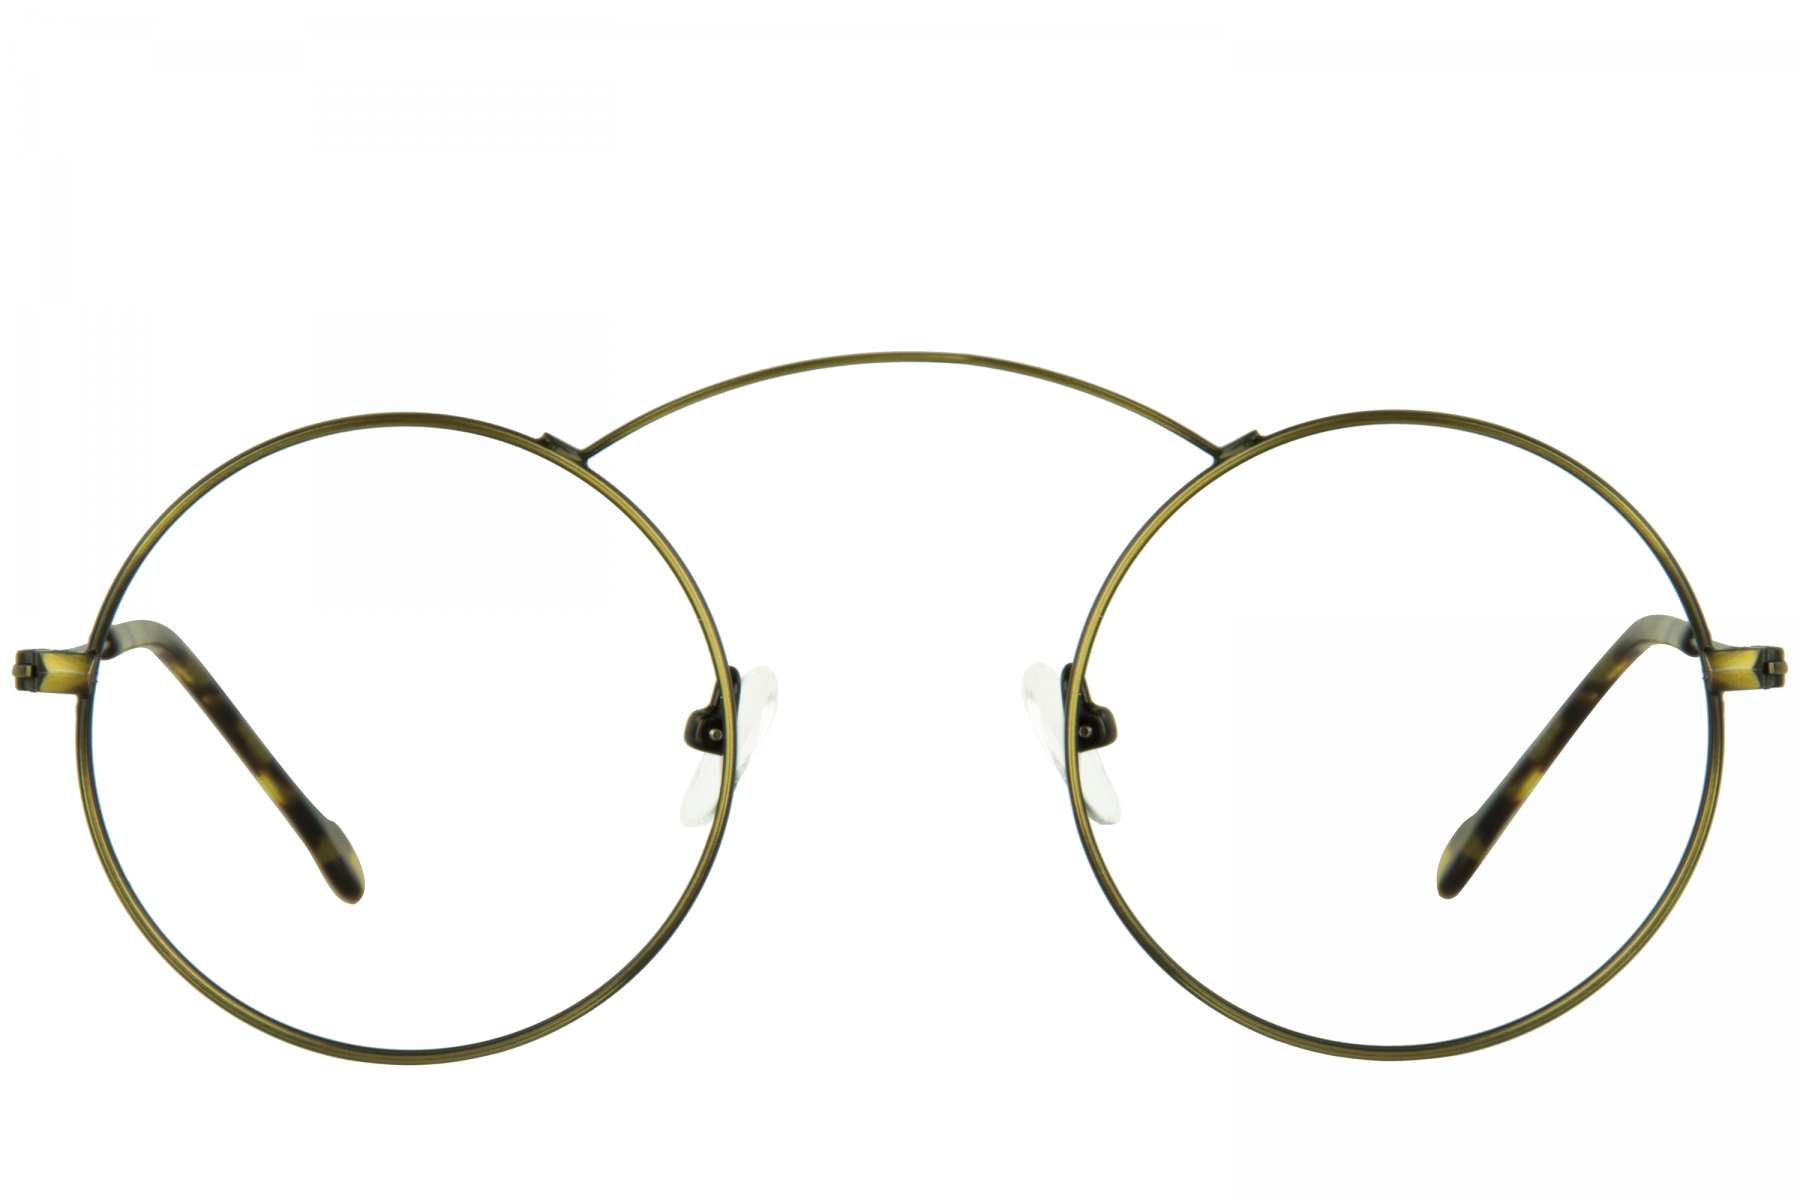 Round glasses png. Joe polette